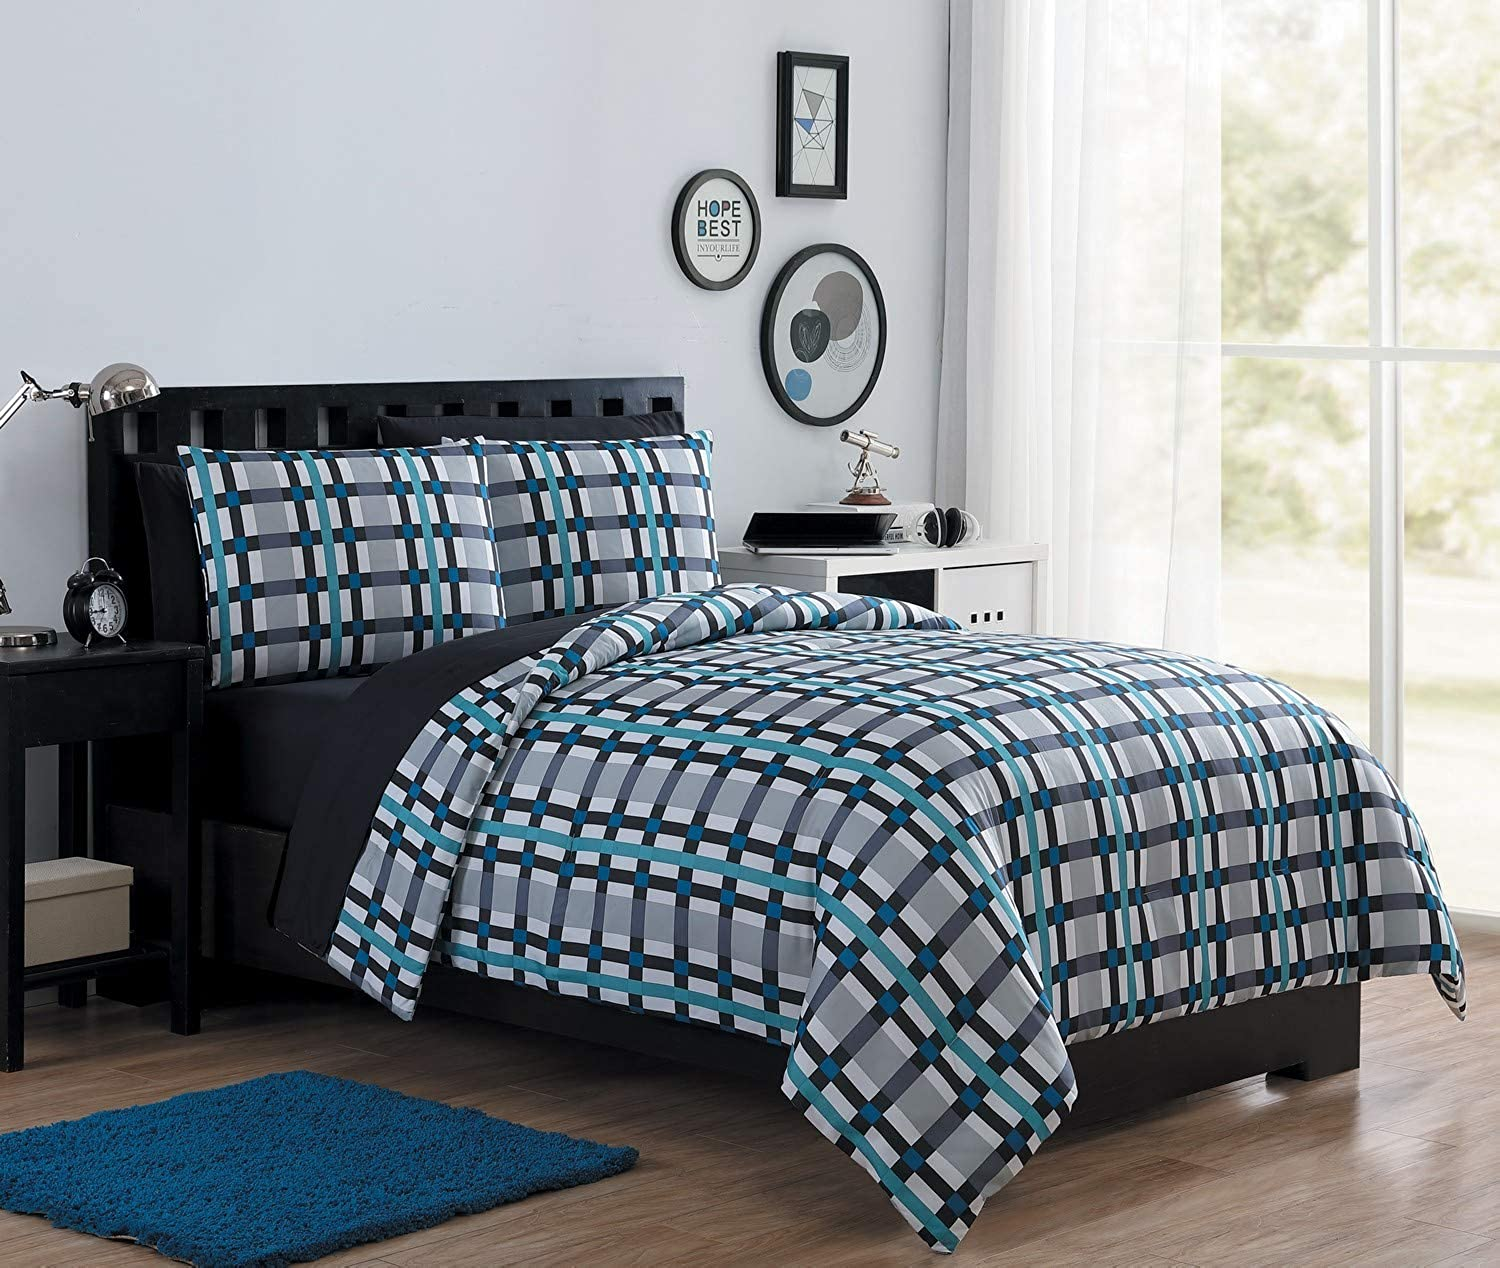 VCNY Home Emmitt Checkered 7 Piece Bed-in-A-Bag Comforter Set, Full, bluee